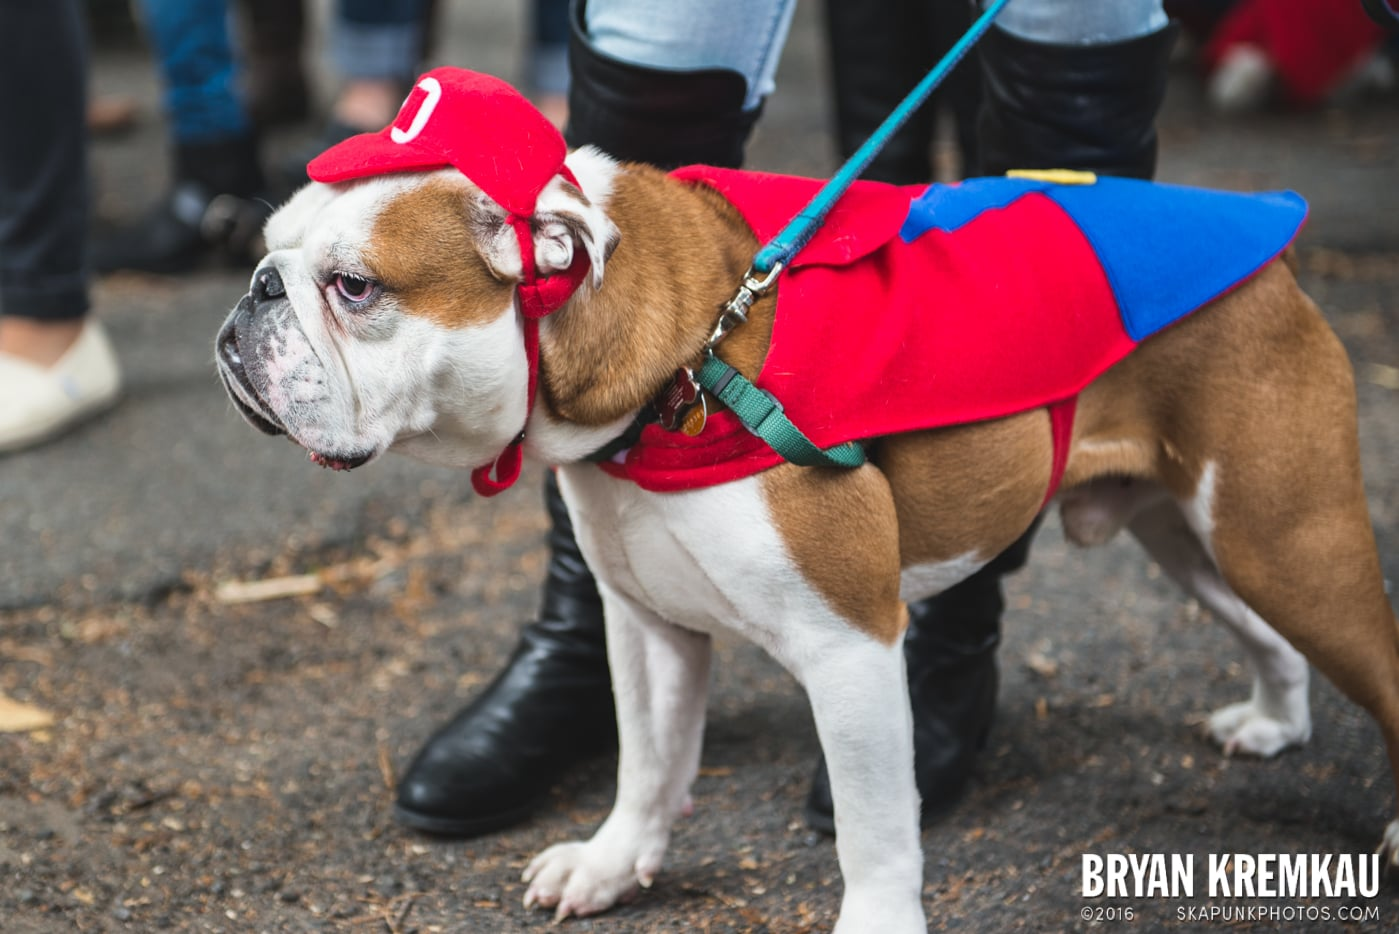 Tompkins Square Halloween Dog Parade 2015 @ Tompkins Square Park, NYC – 10.24.15 (17)